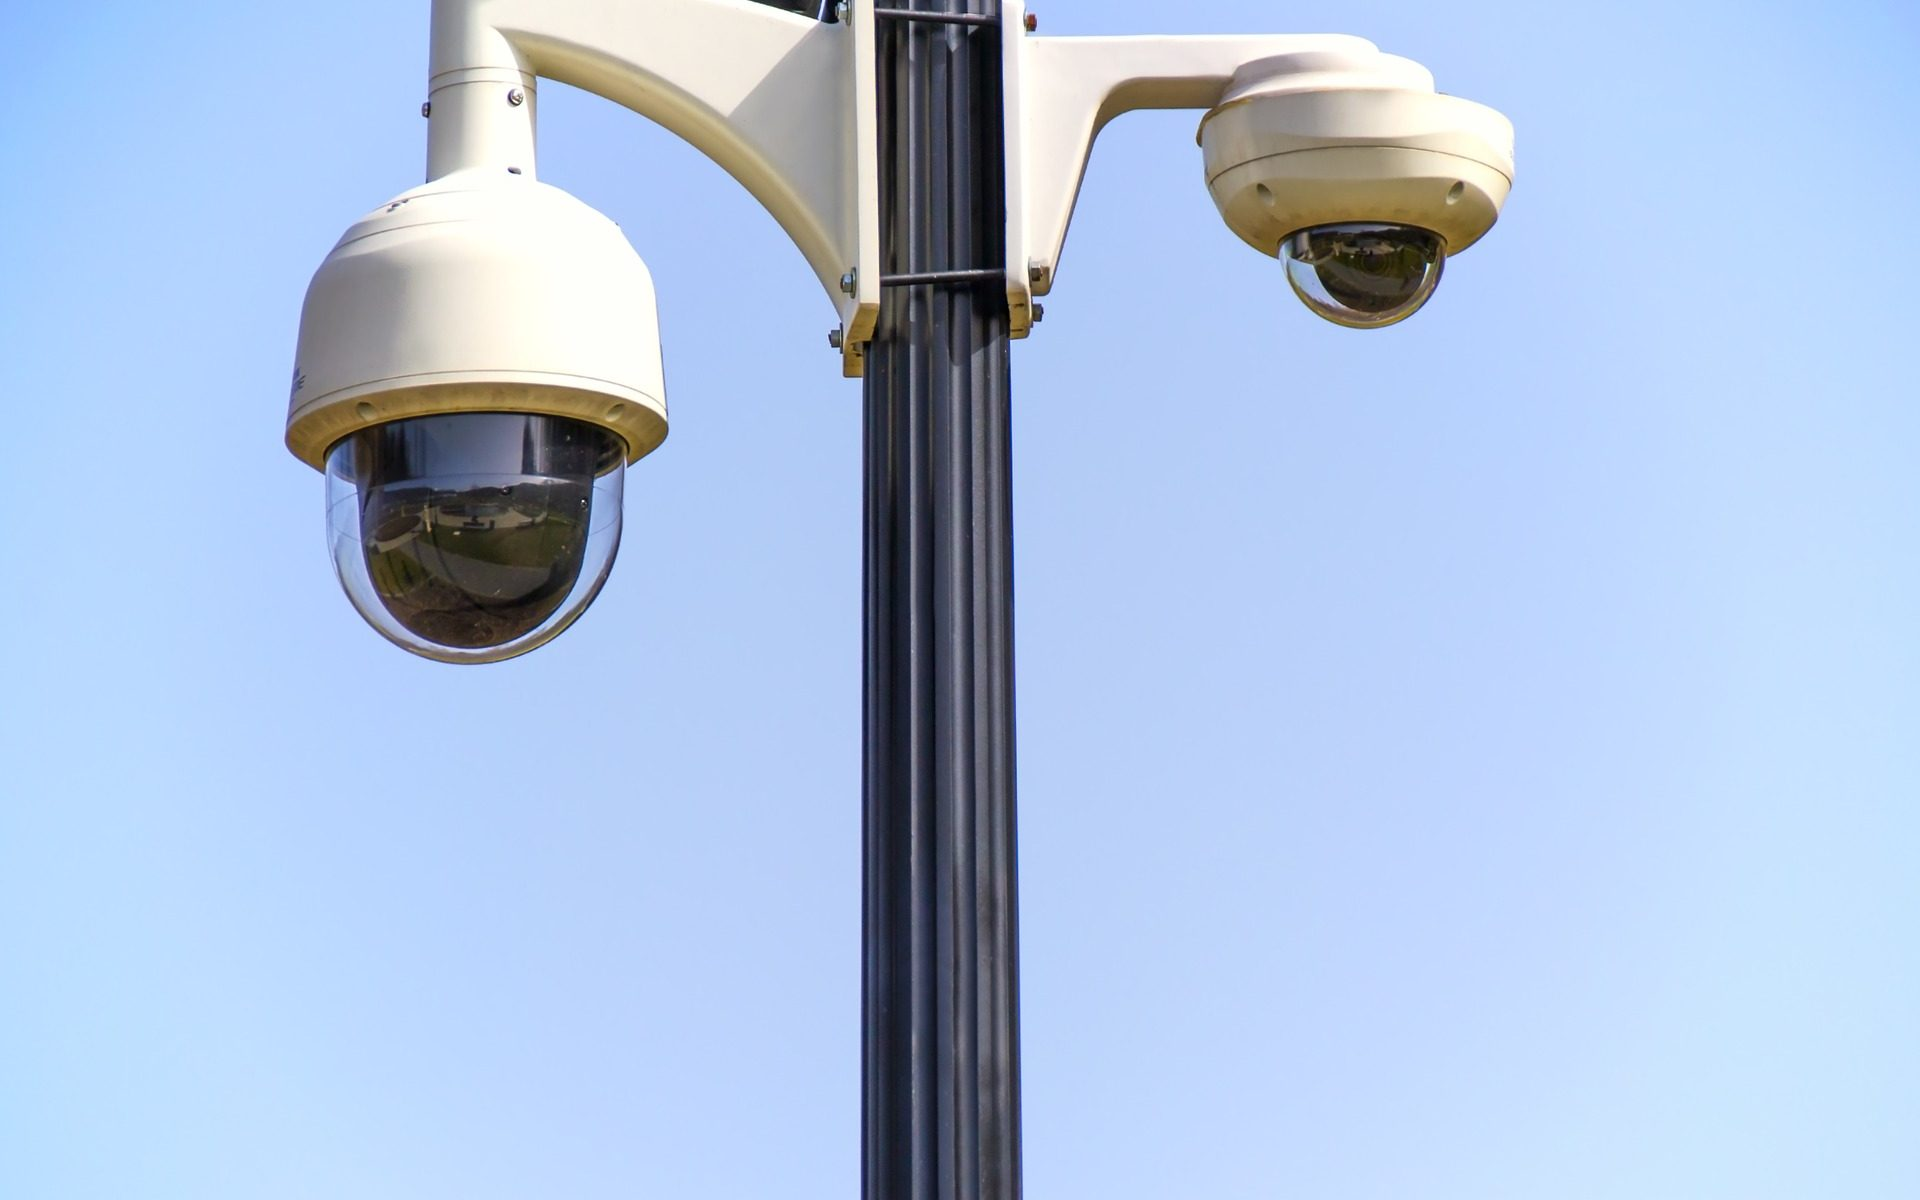 Big Brother is watching you - Transparenz an allen Orten